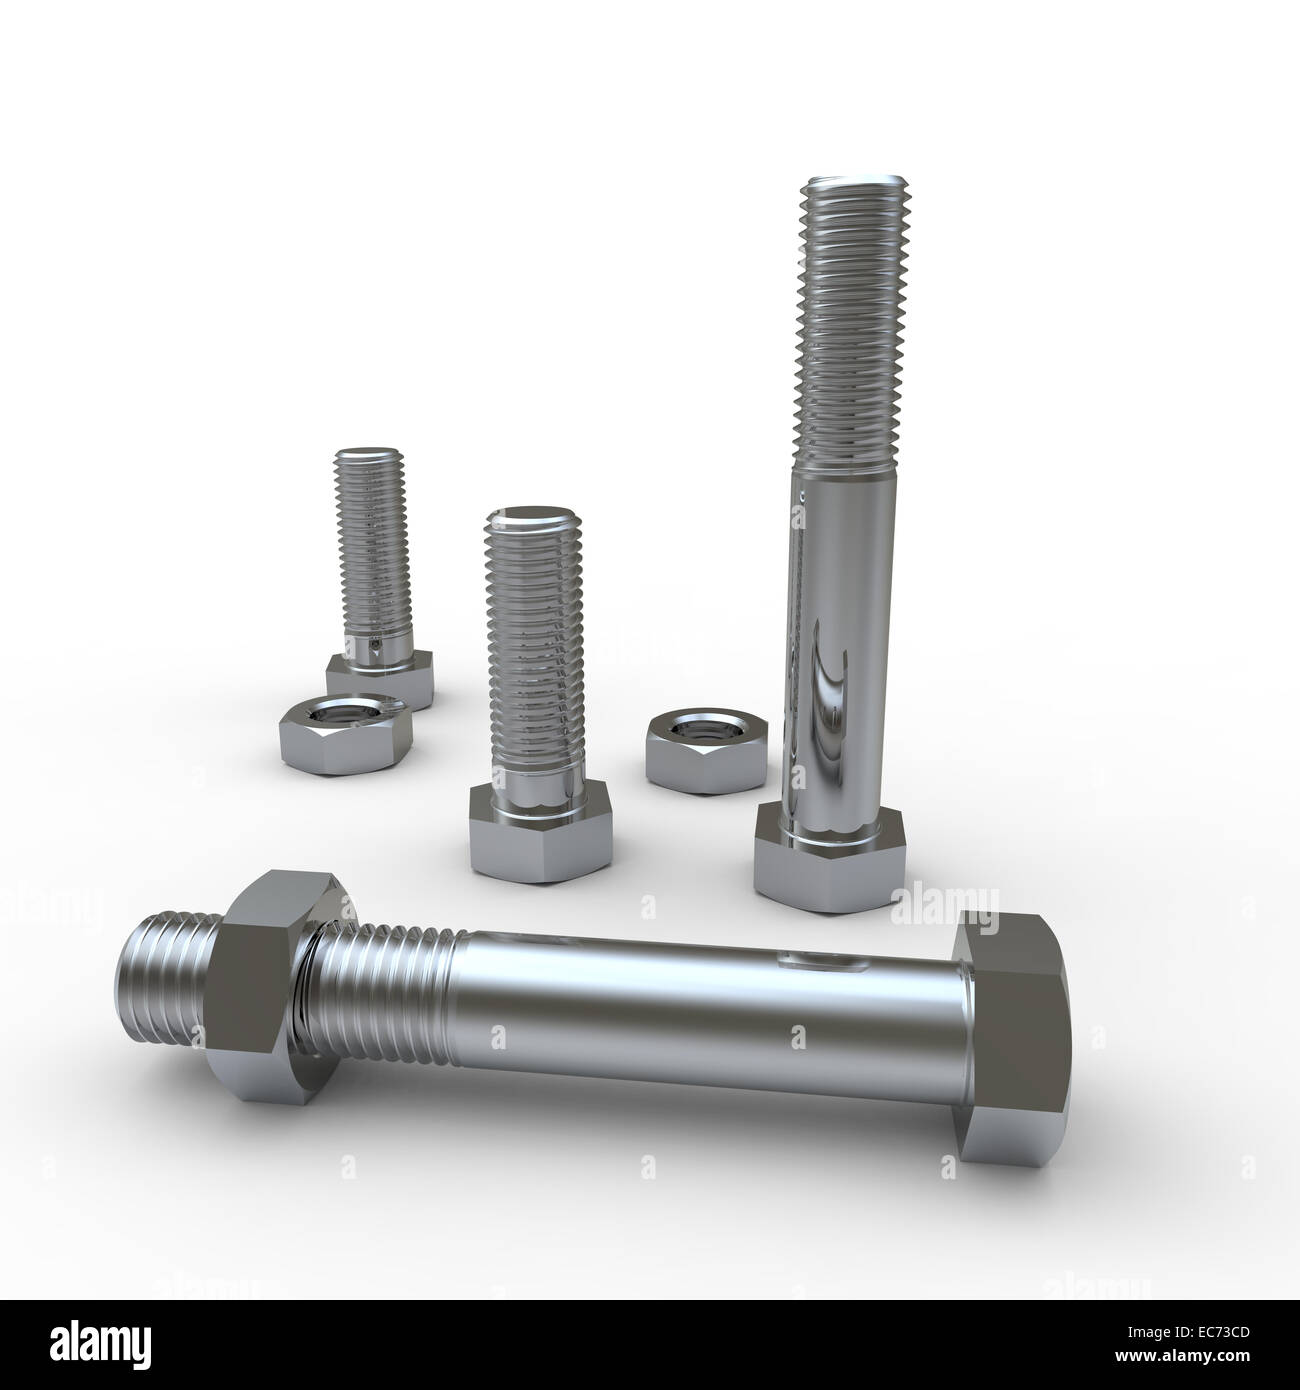 stainless steel hexagon head threaded nuts bolts and screws on a white background - Stock Image